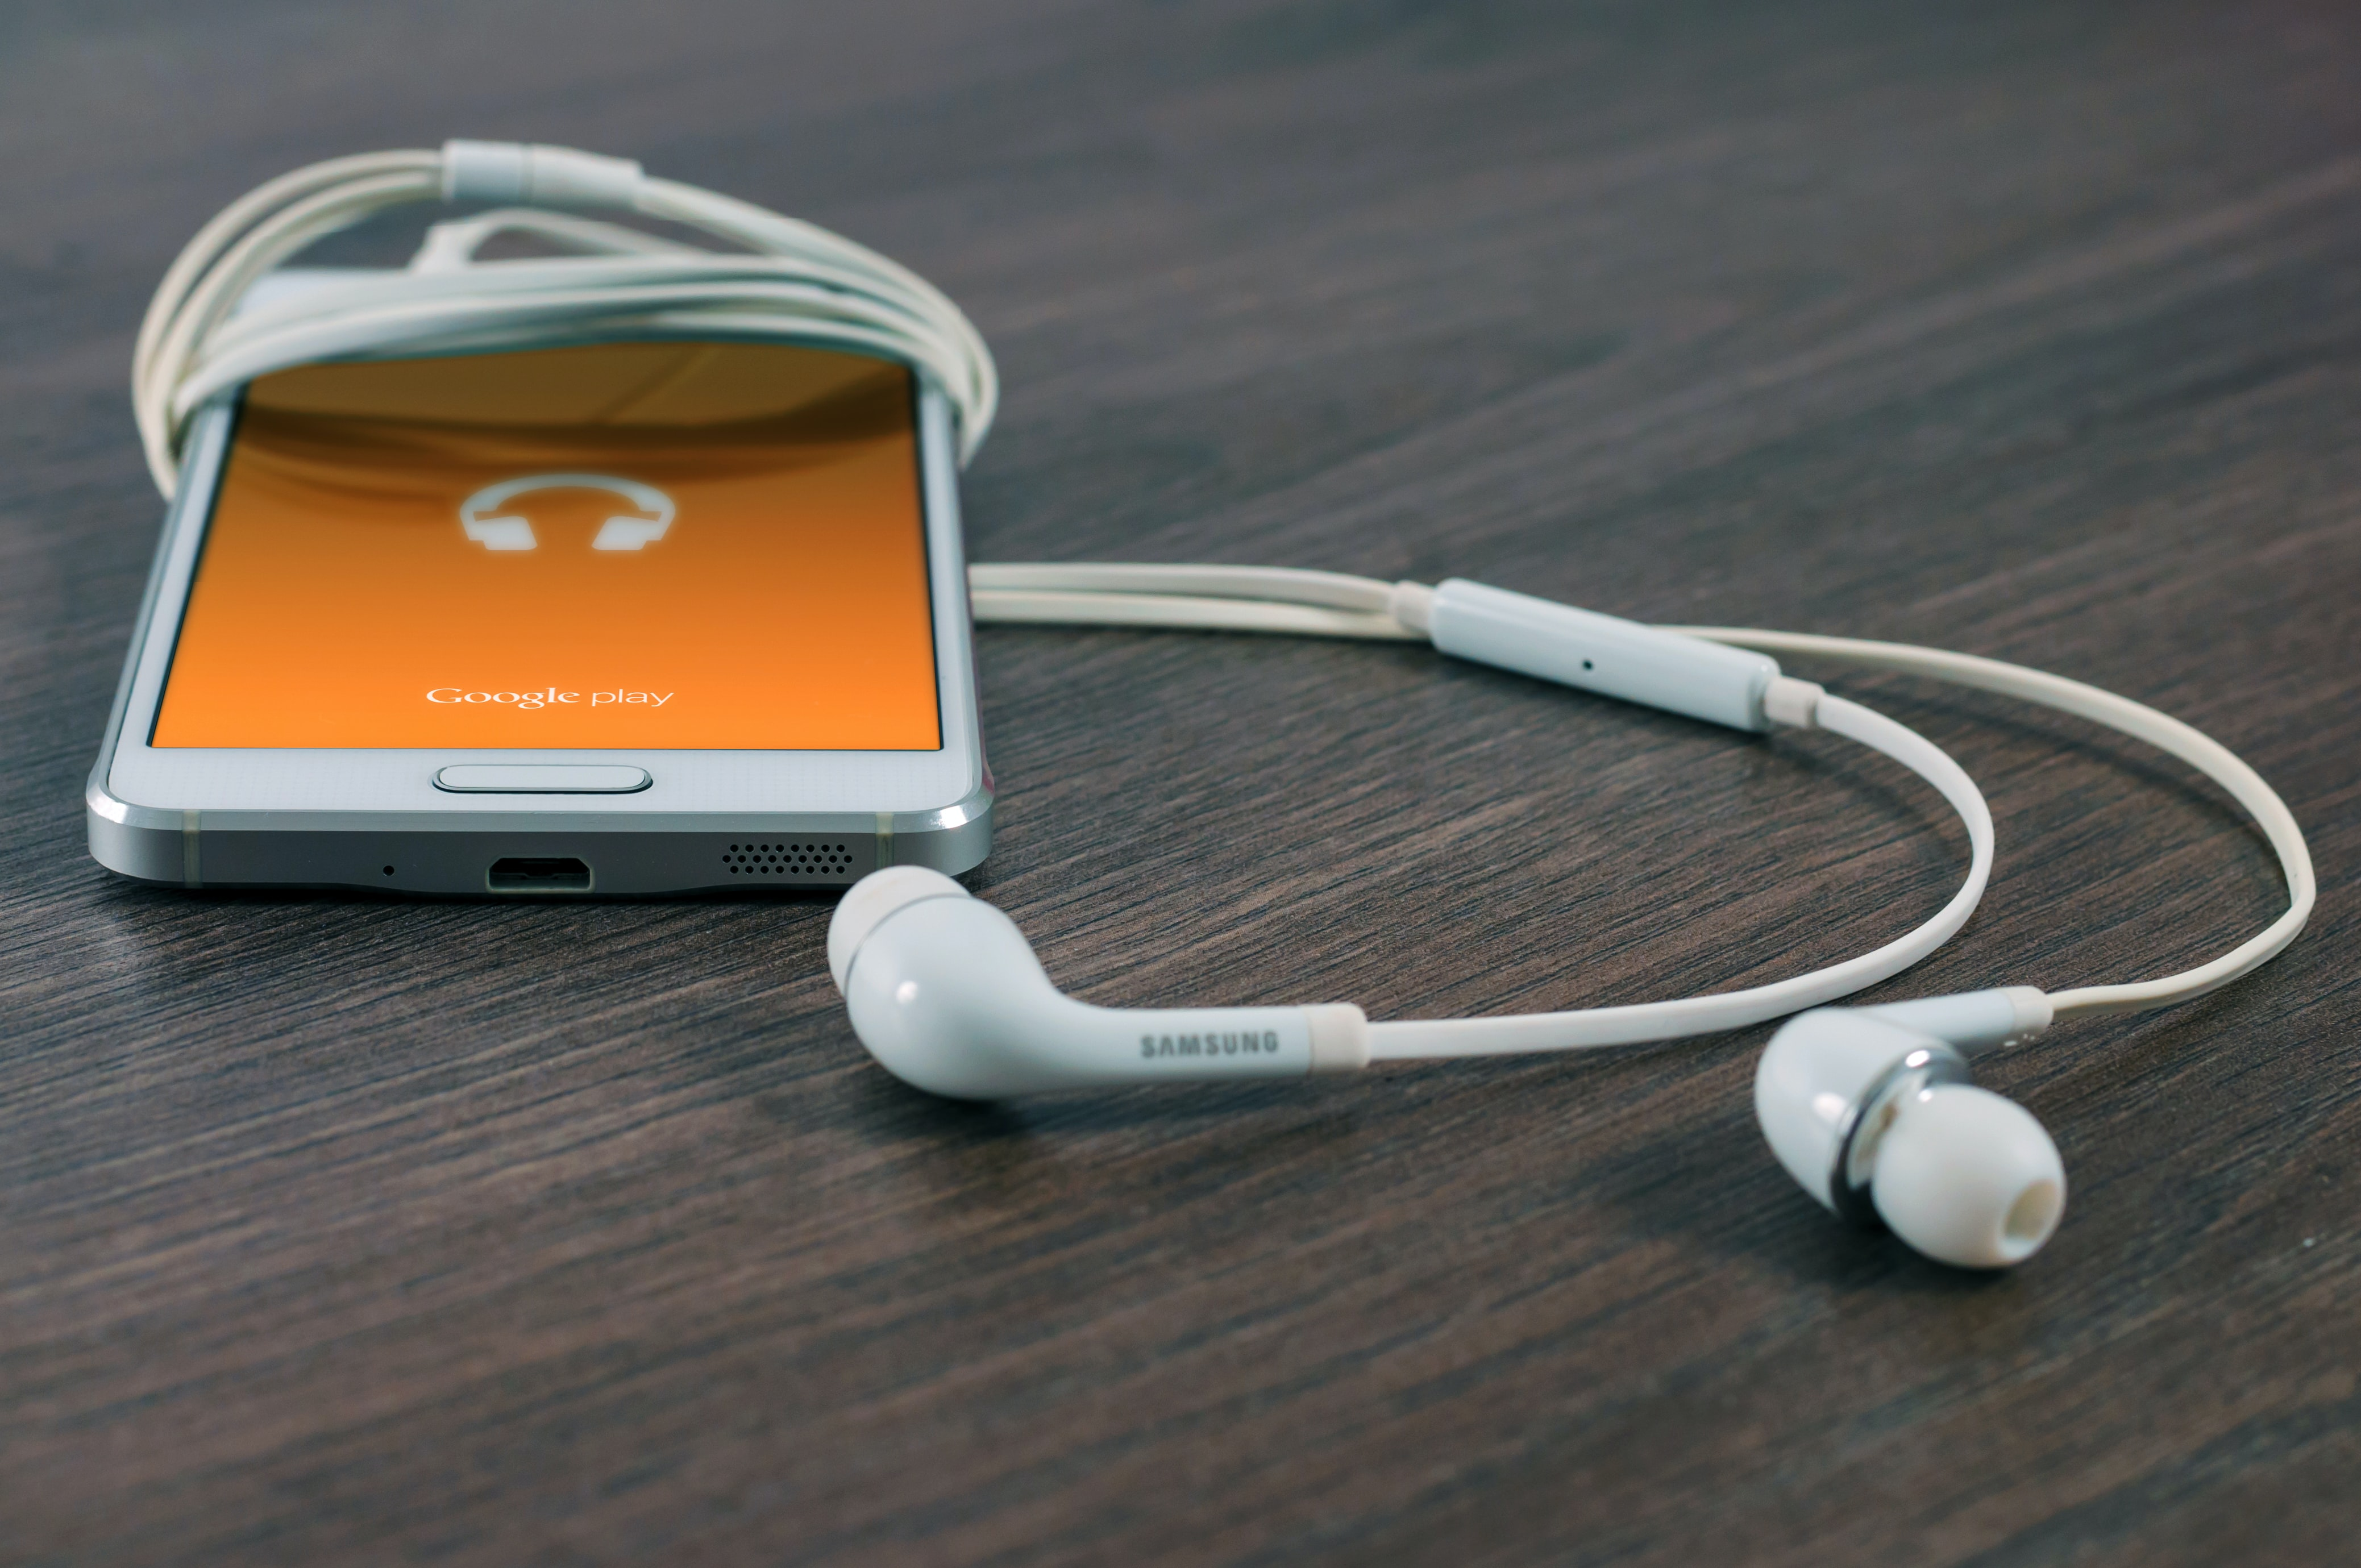 Google Play music app on a smartphone with earphones on a wooden surface